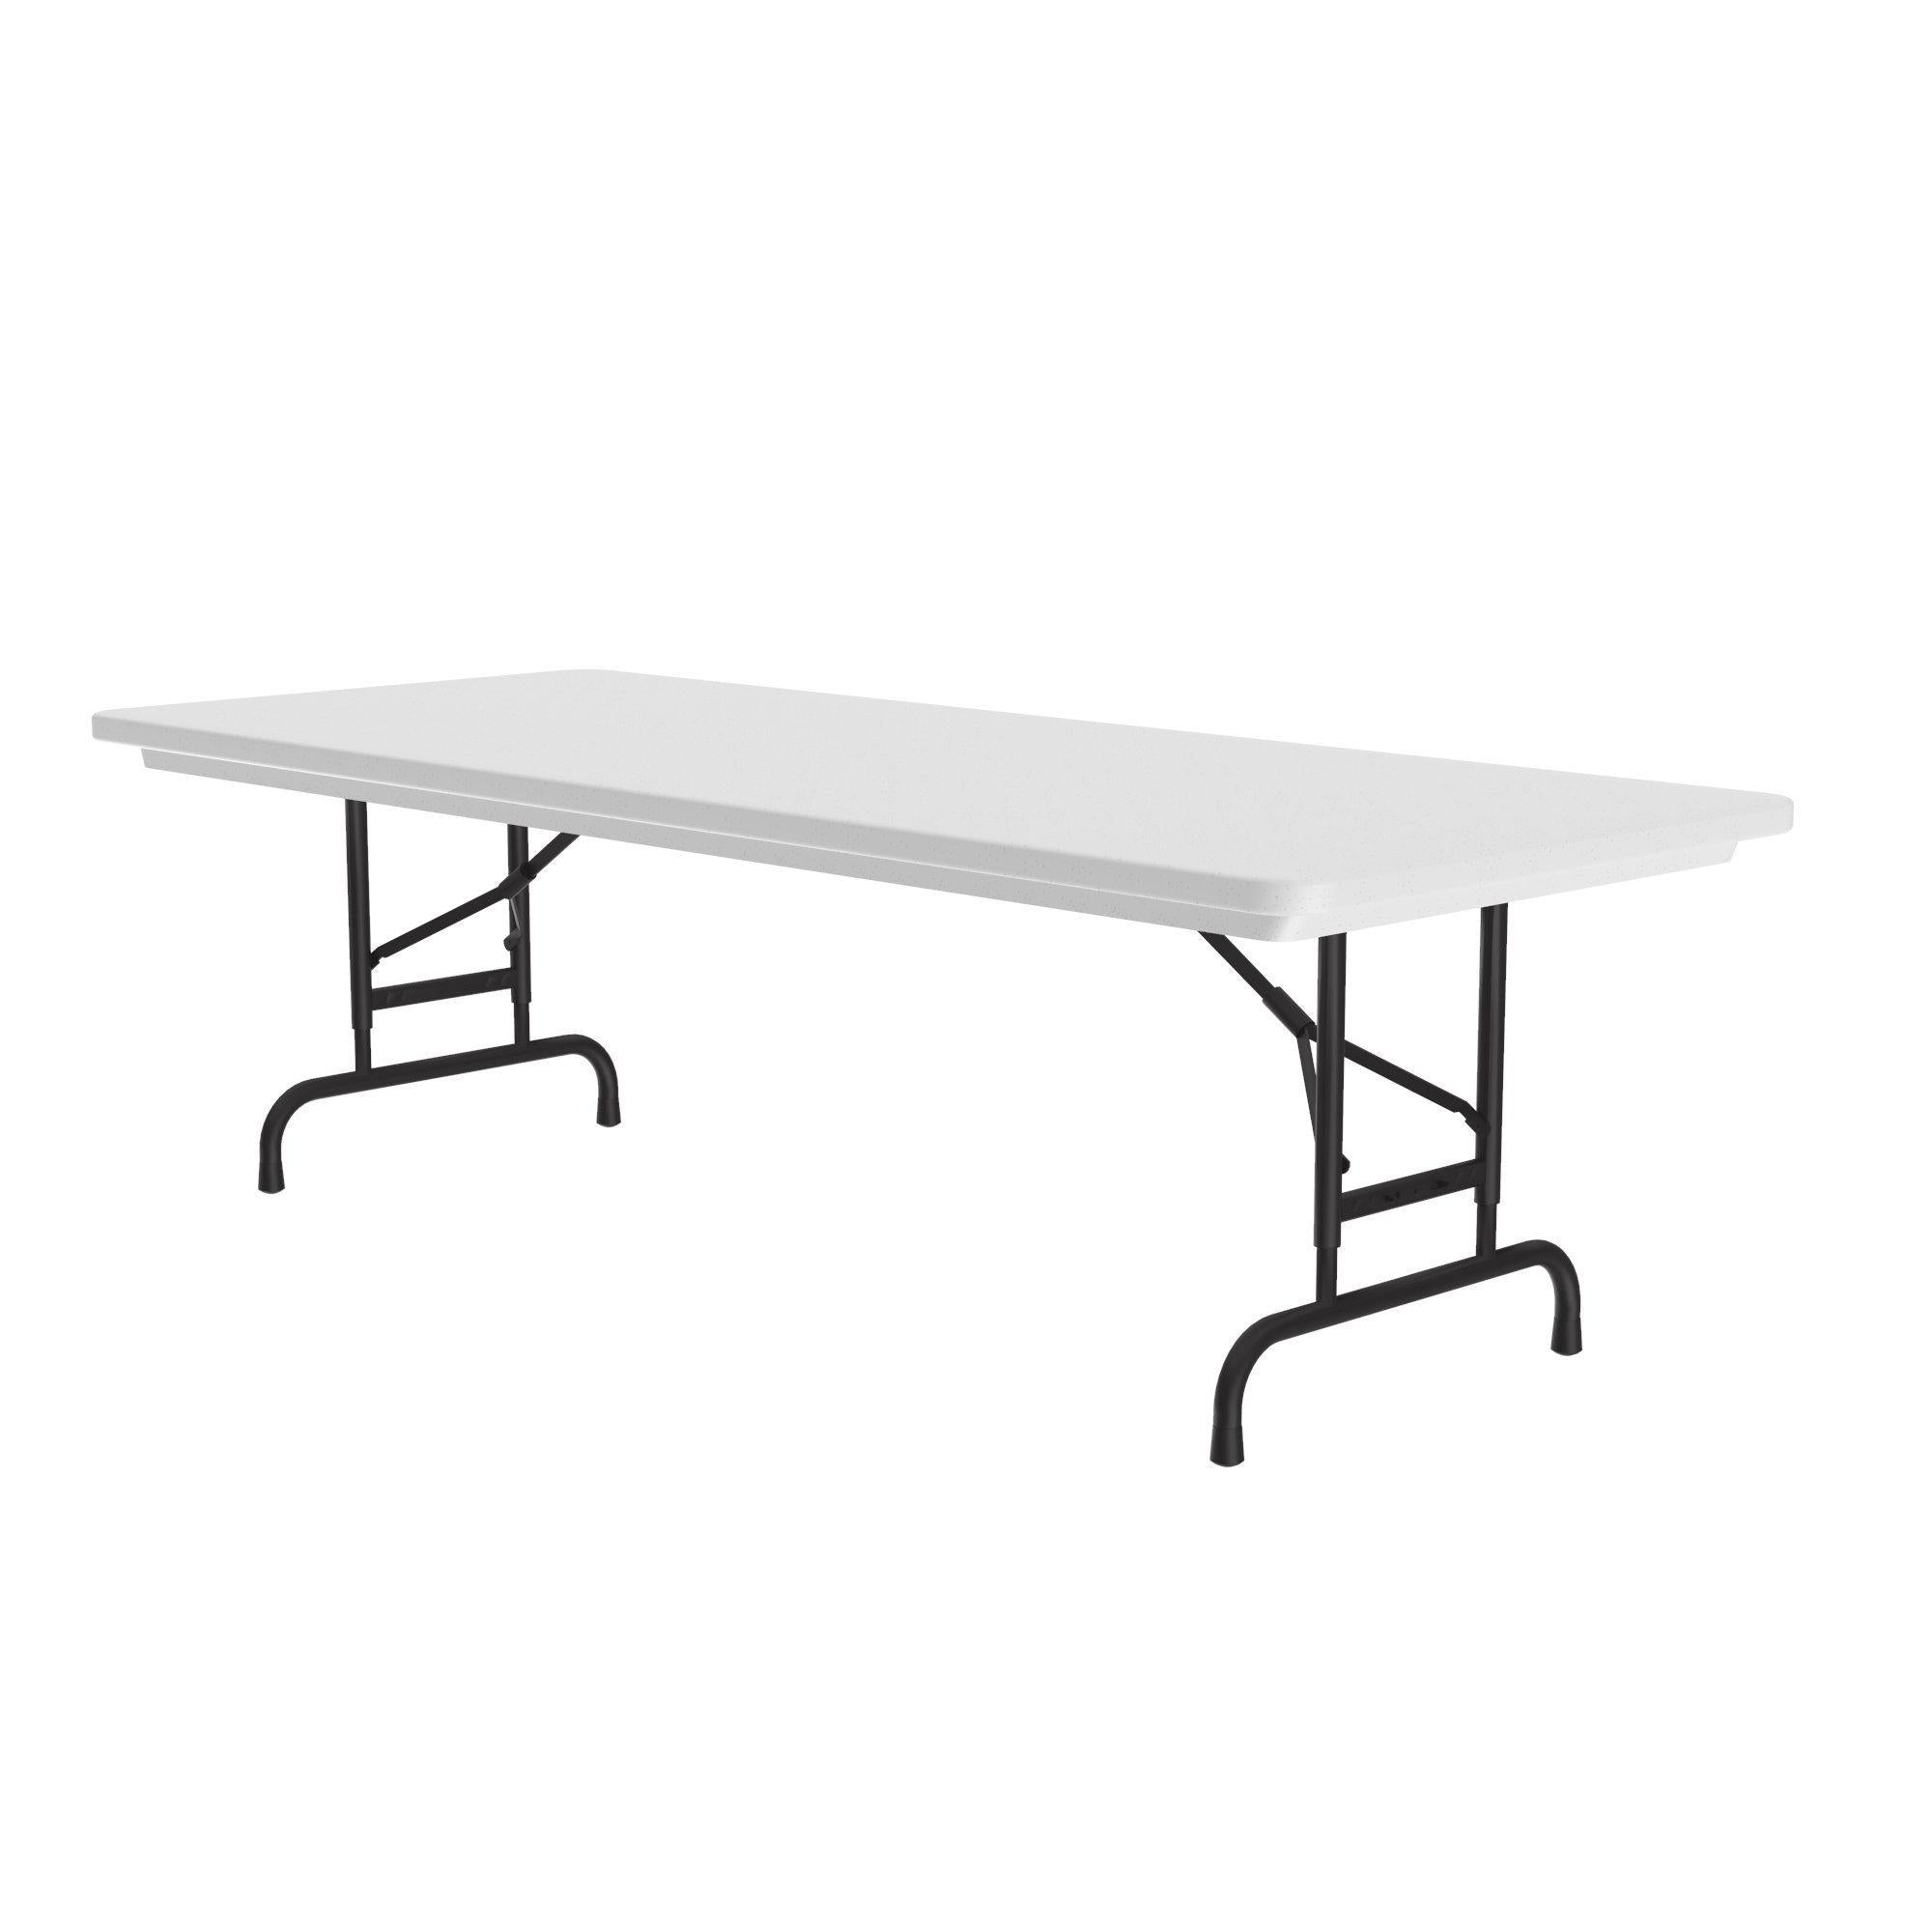 Heavy Duty Commercial Use Blow Molded Folding Table, Standard Colors, Adjustable Height, 30 x 96